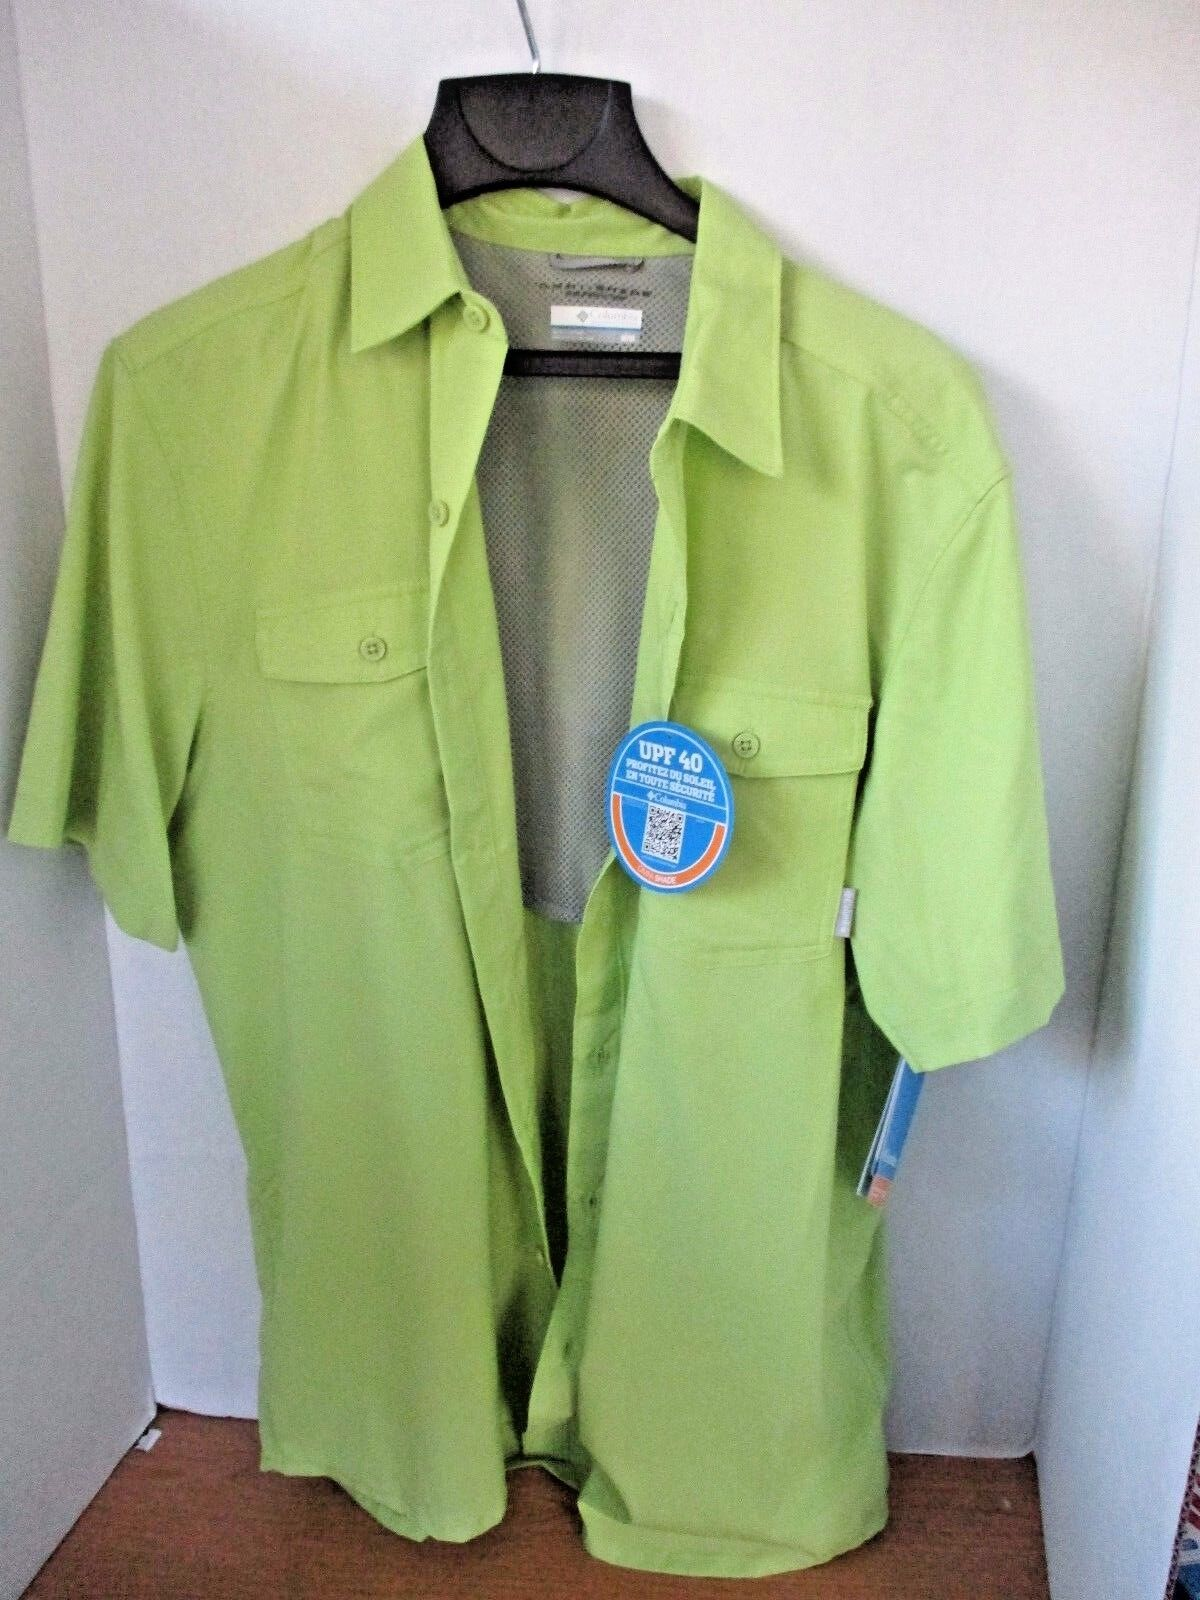 COLUMBIAGreen BUTTON DOWN OMNI SHADE Ventilated UPF 40 SHIRTMen's MediumNWT